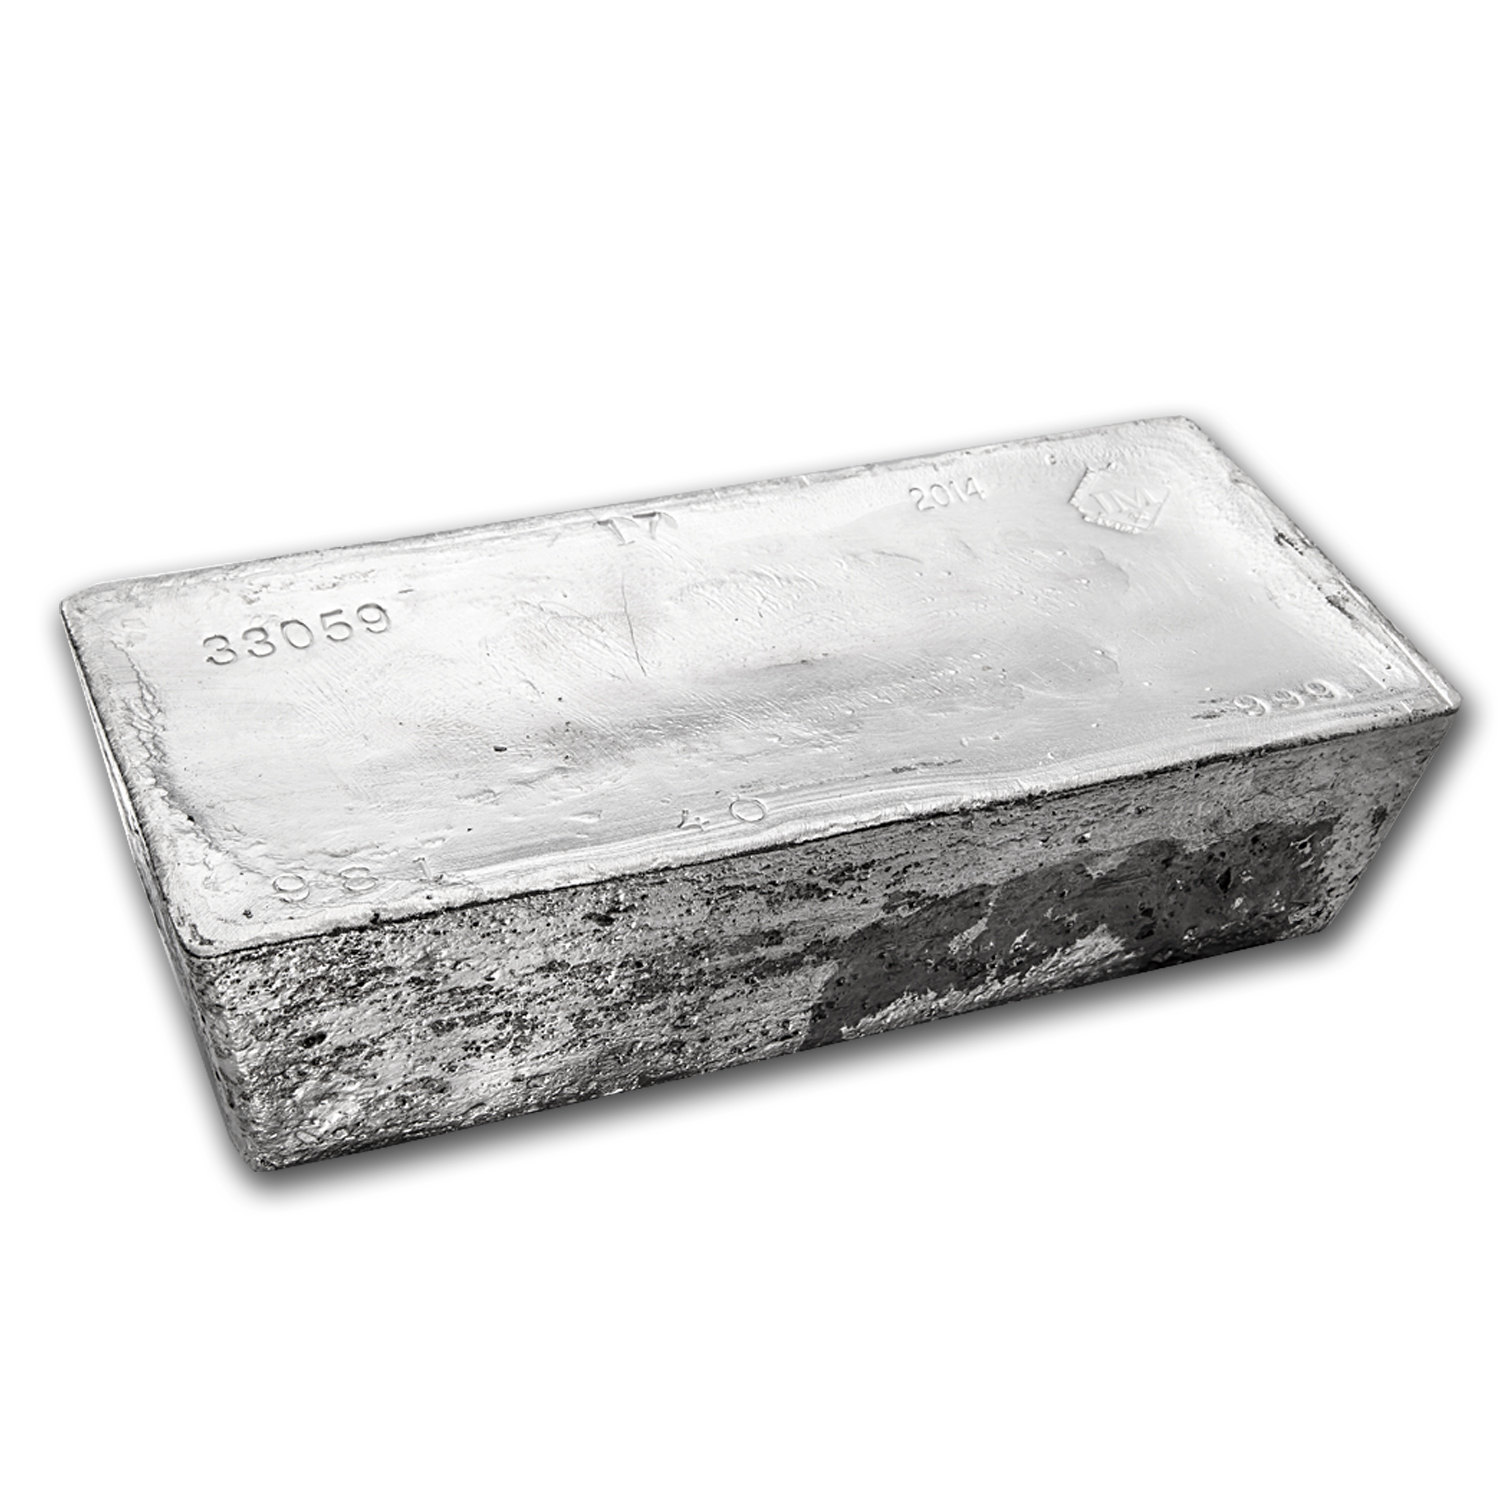 956.00 oz Silver Bar - Johnson Matthey